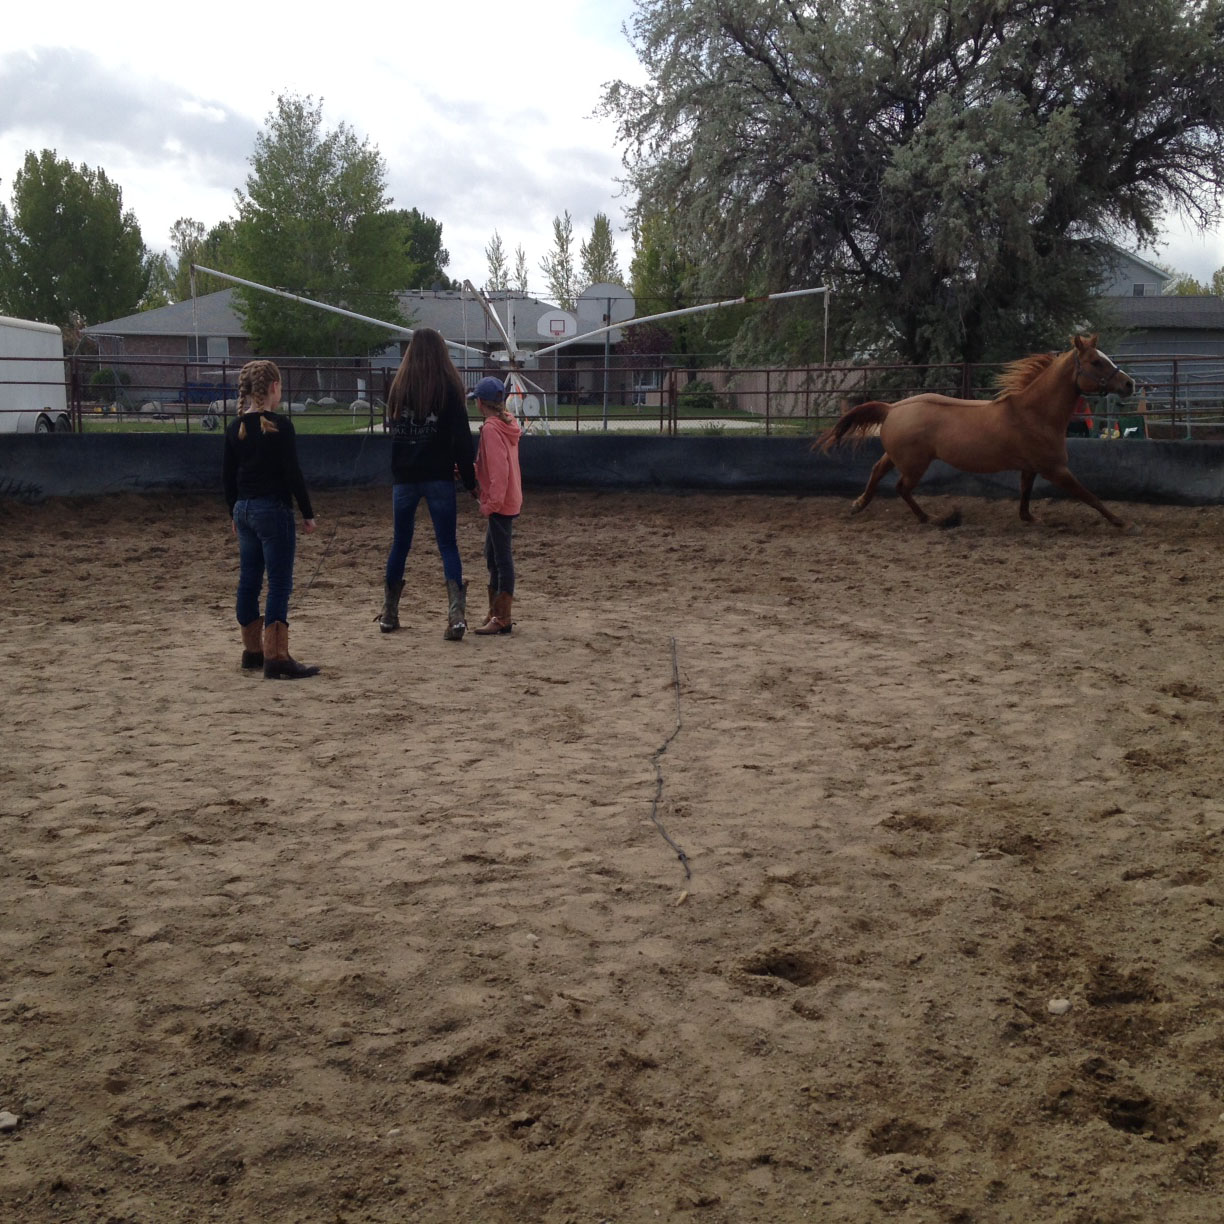 Lunging in the round pen!